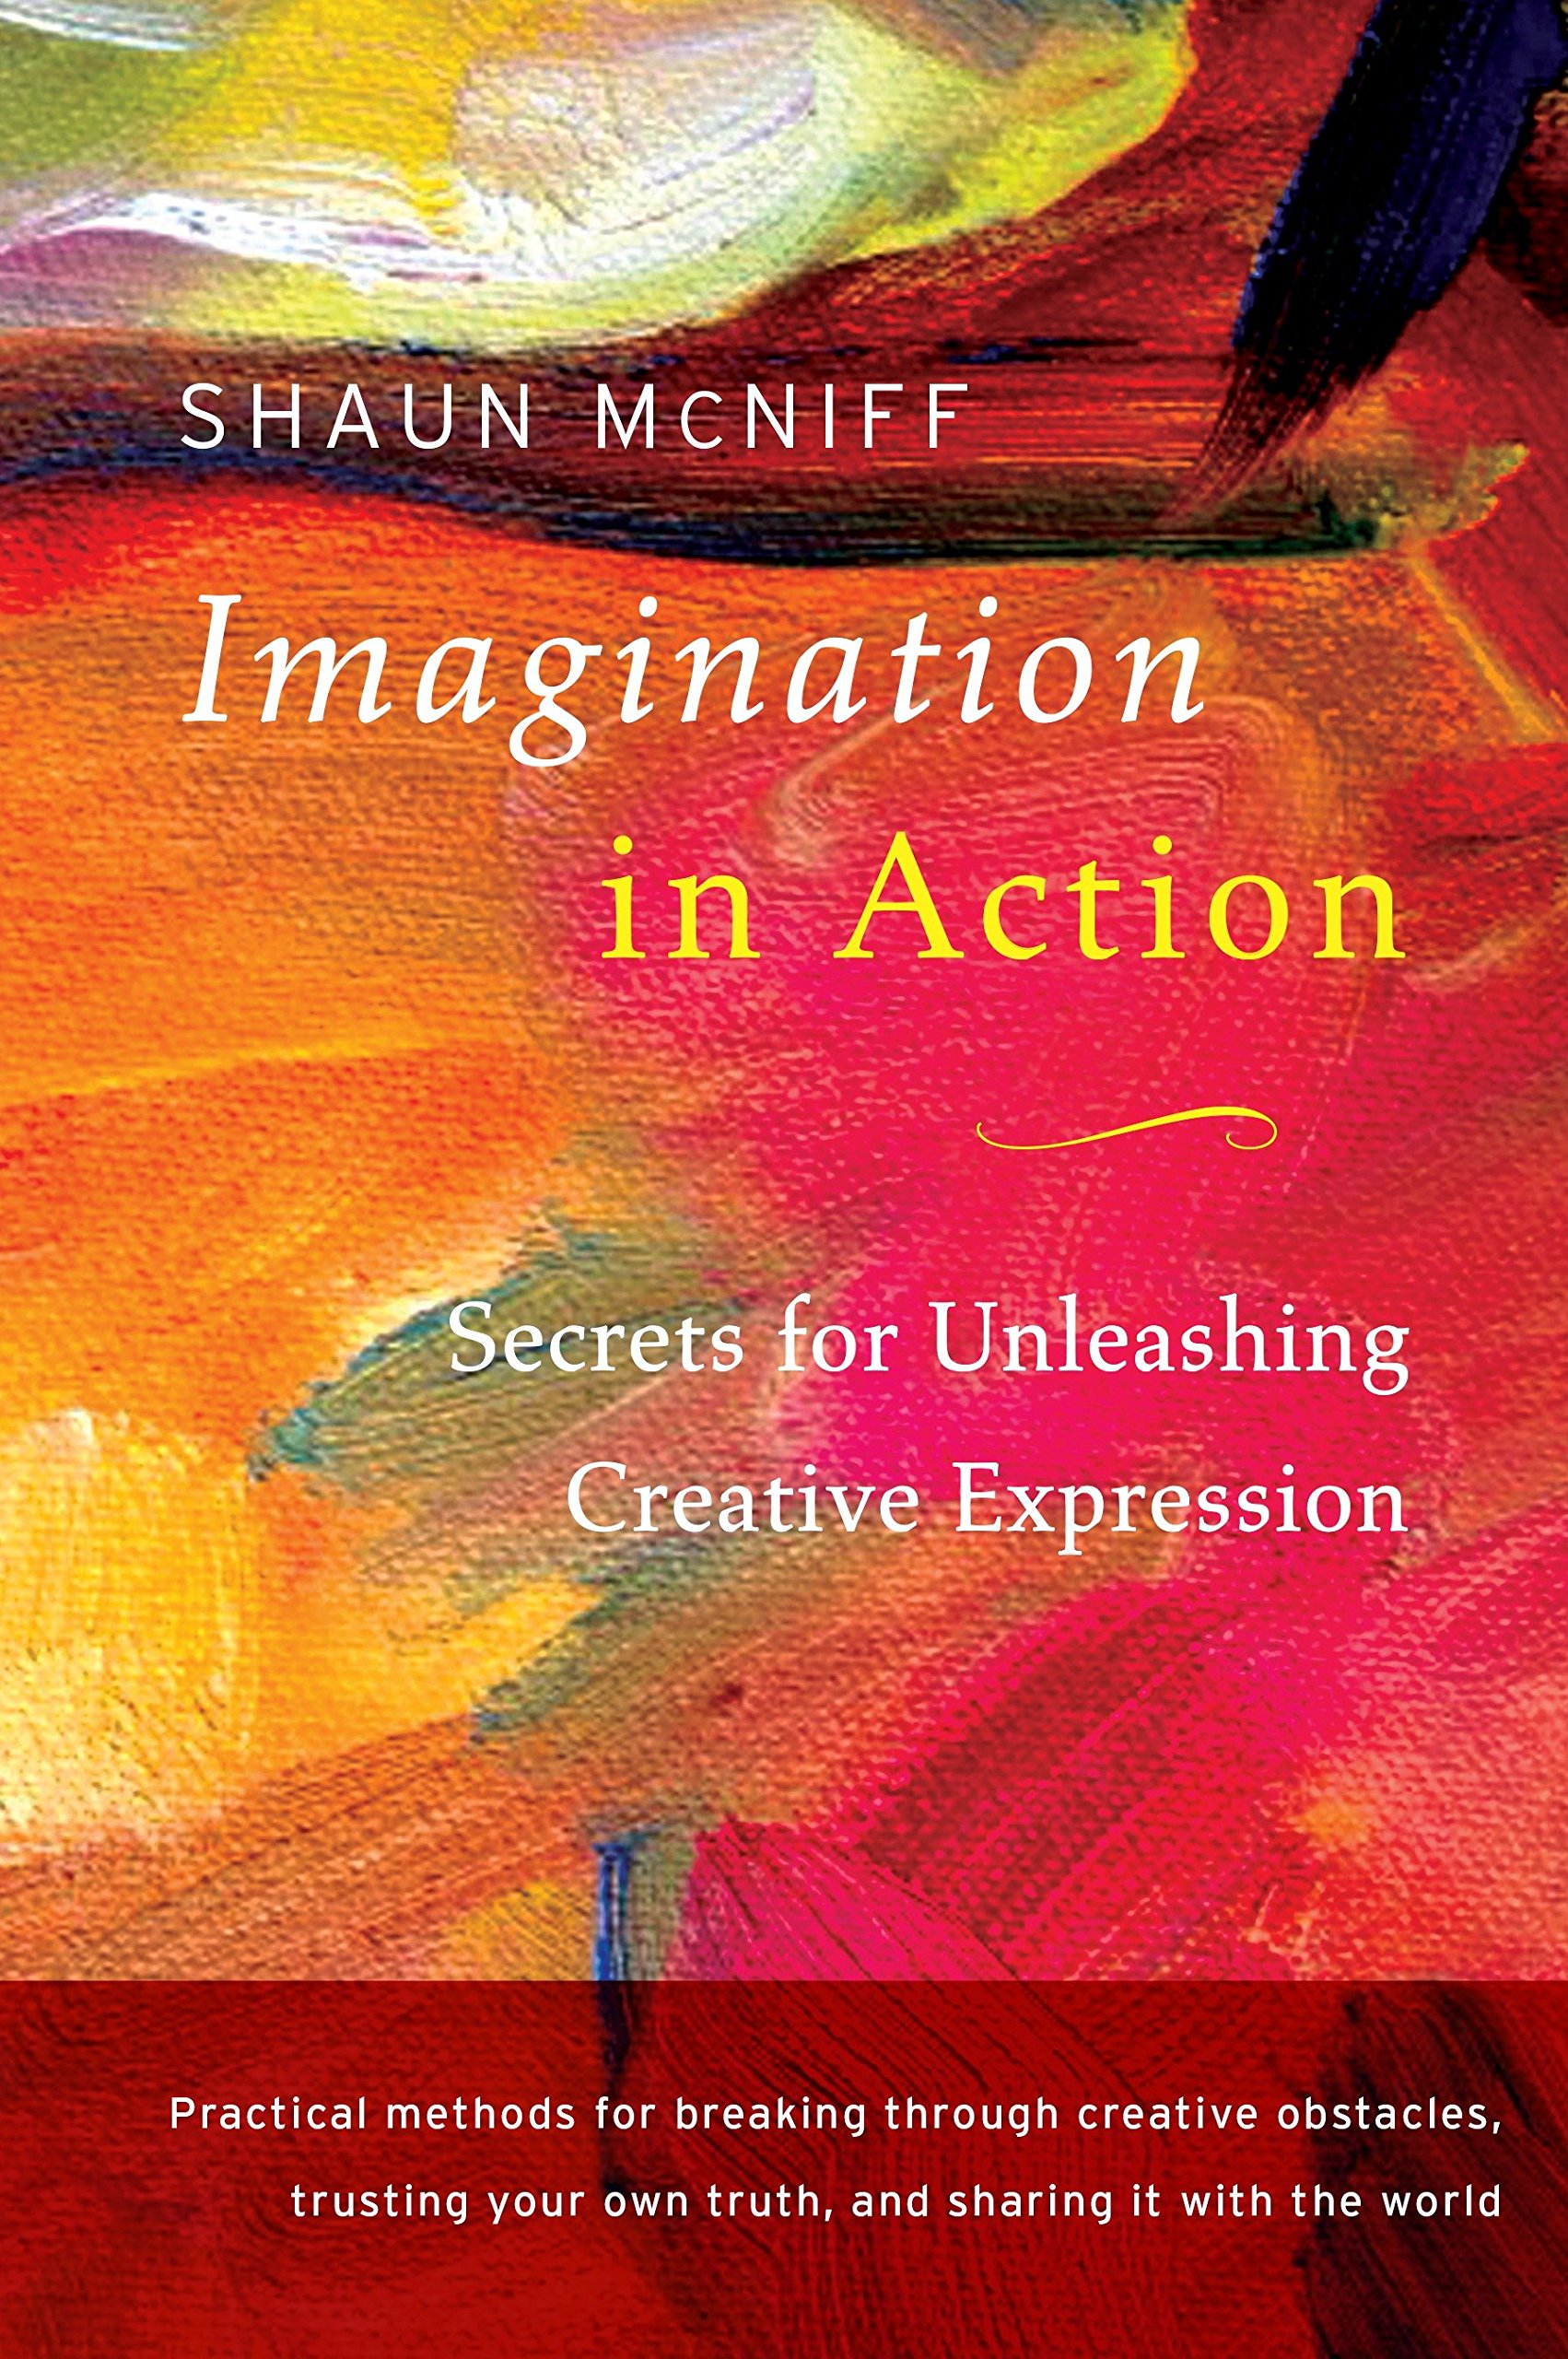 Imagination in Action: Secrets for Unleashing Creative Expression